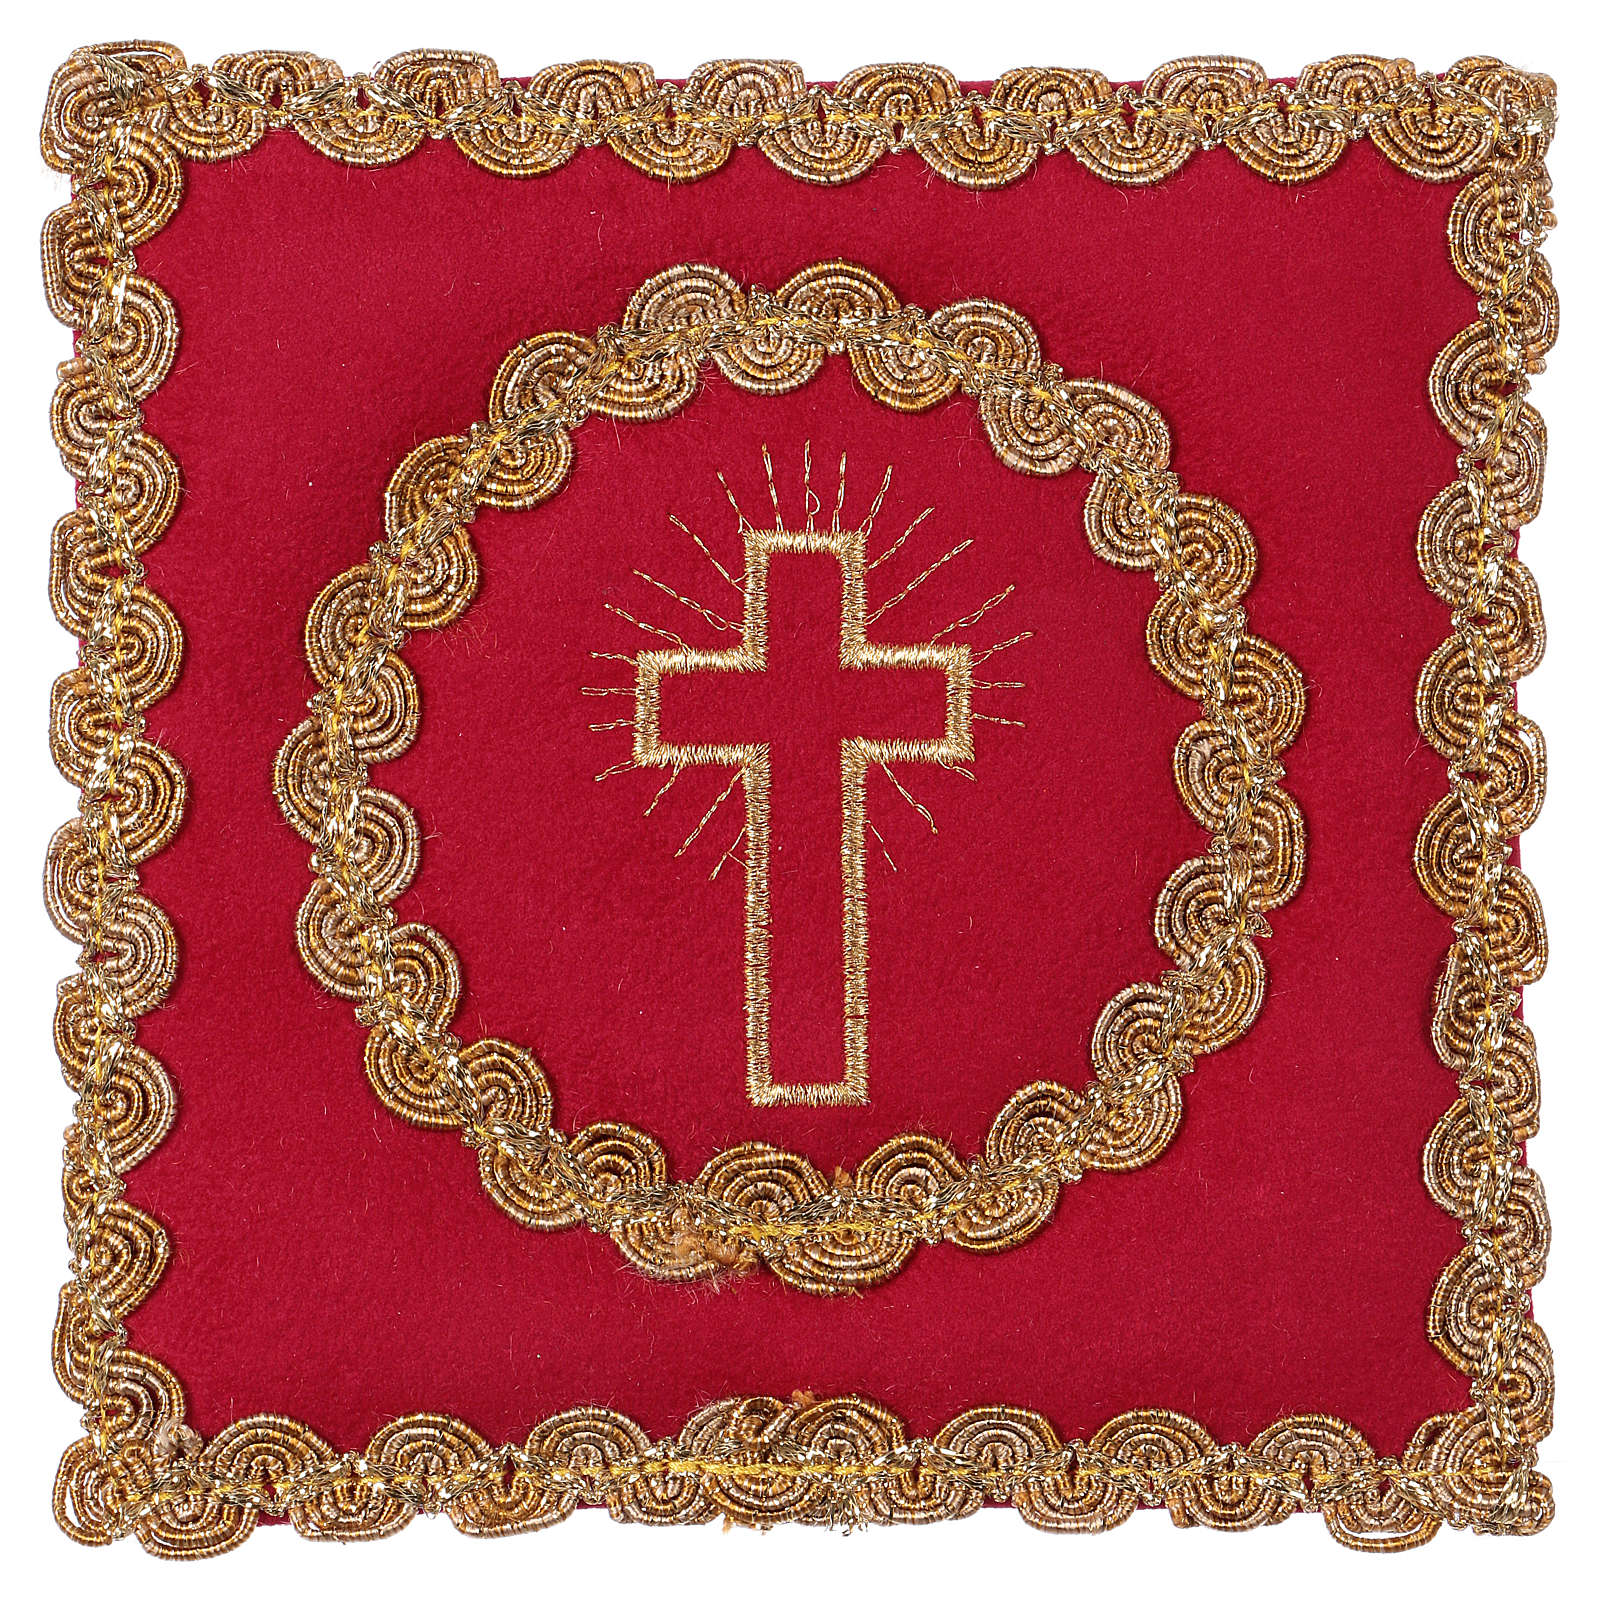 Chalice veil (pall) with golden cross, red flocked fabric 4